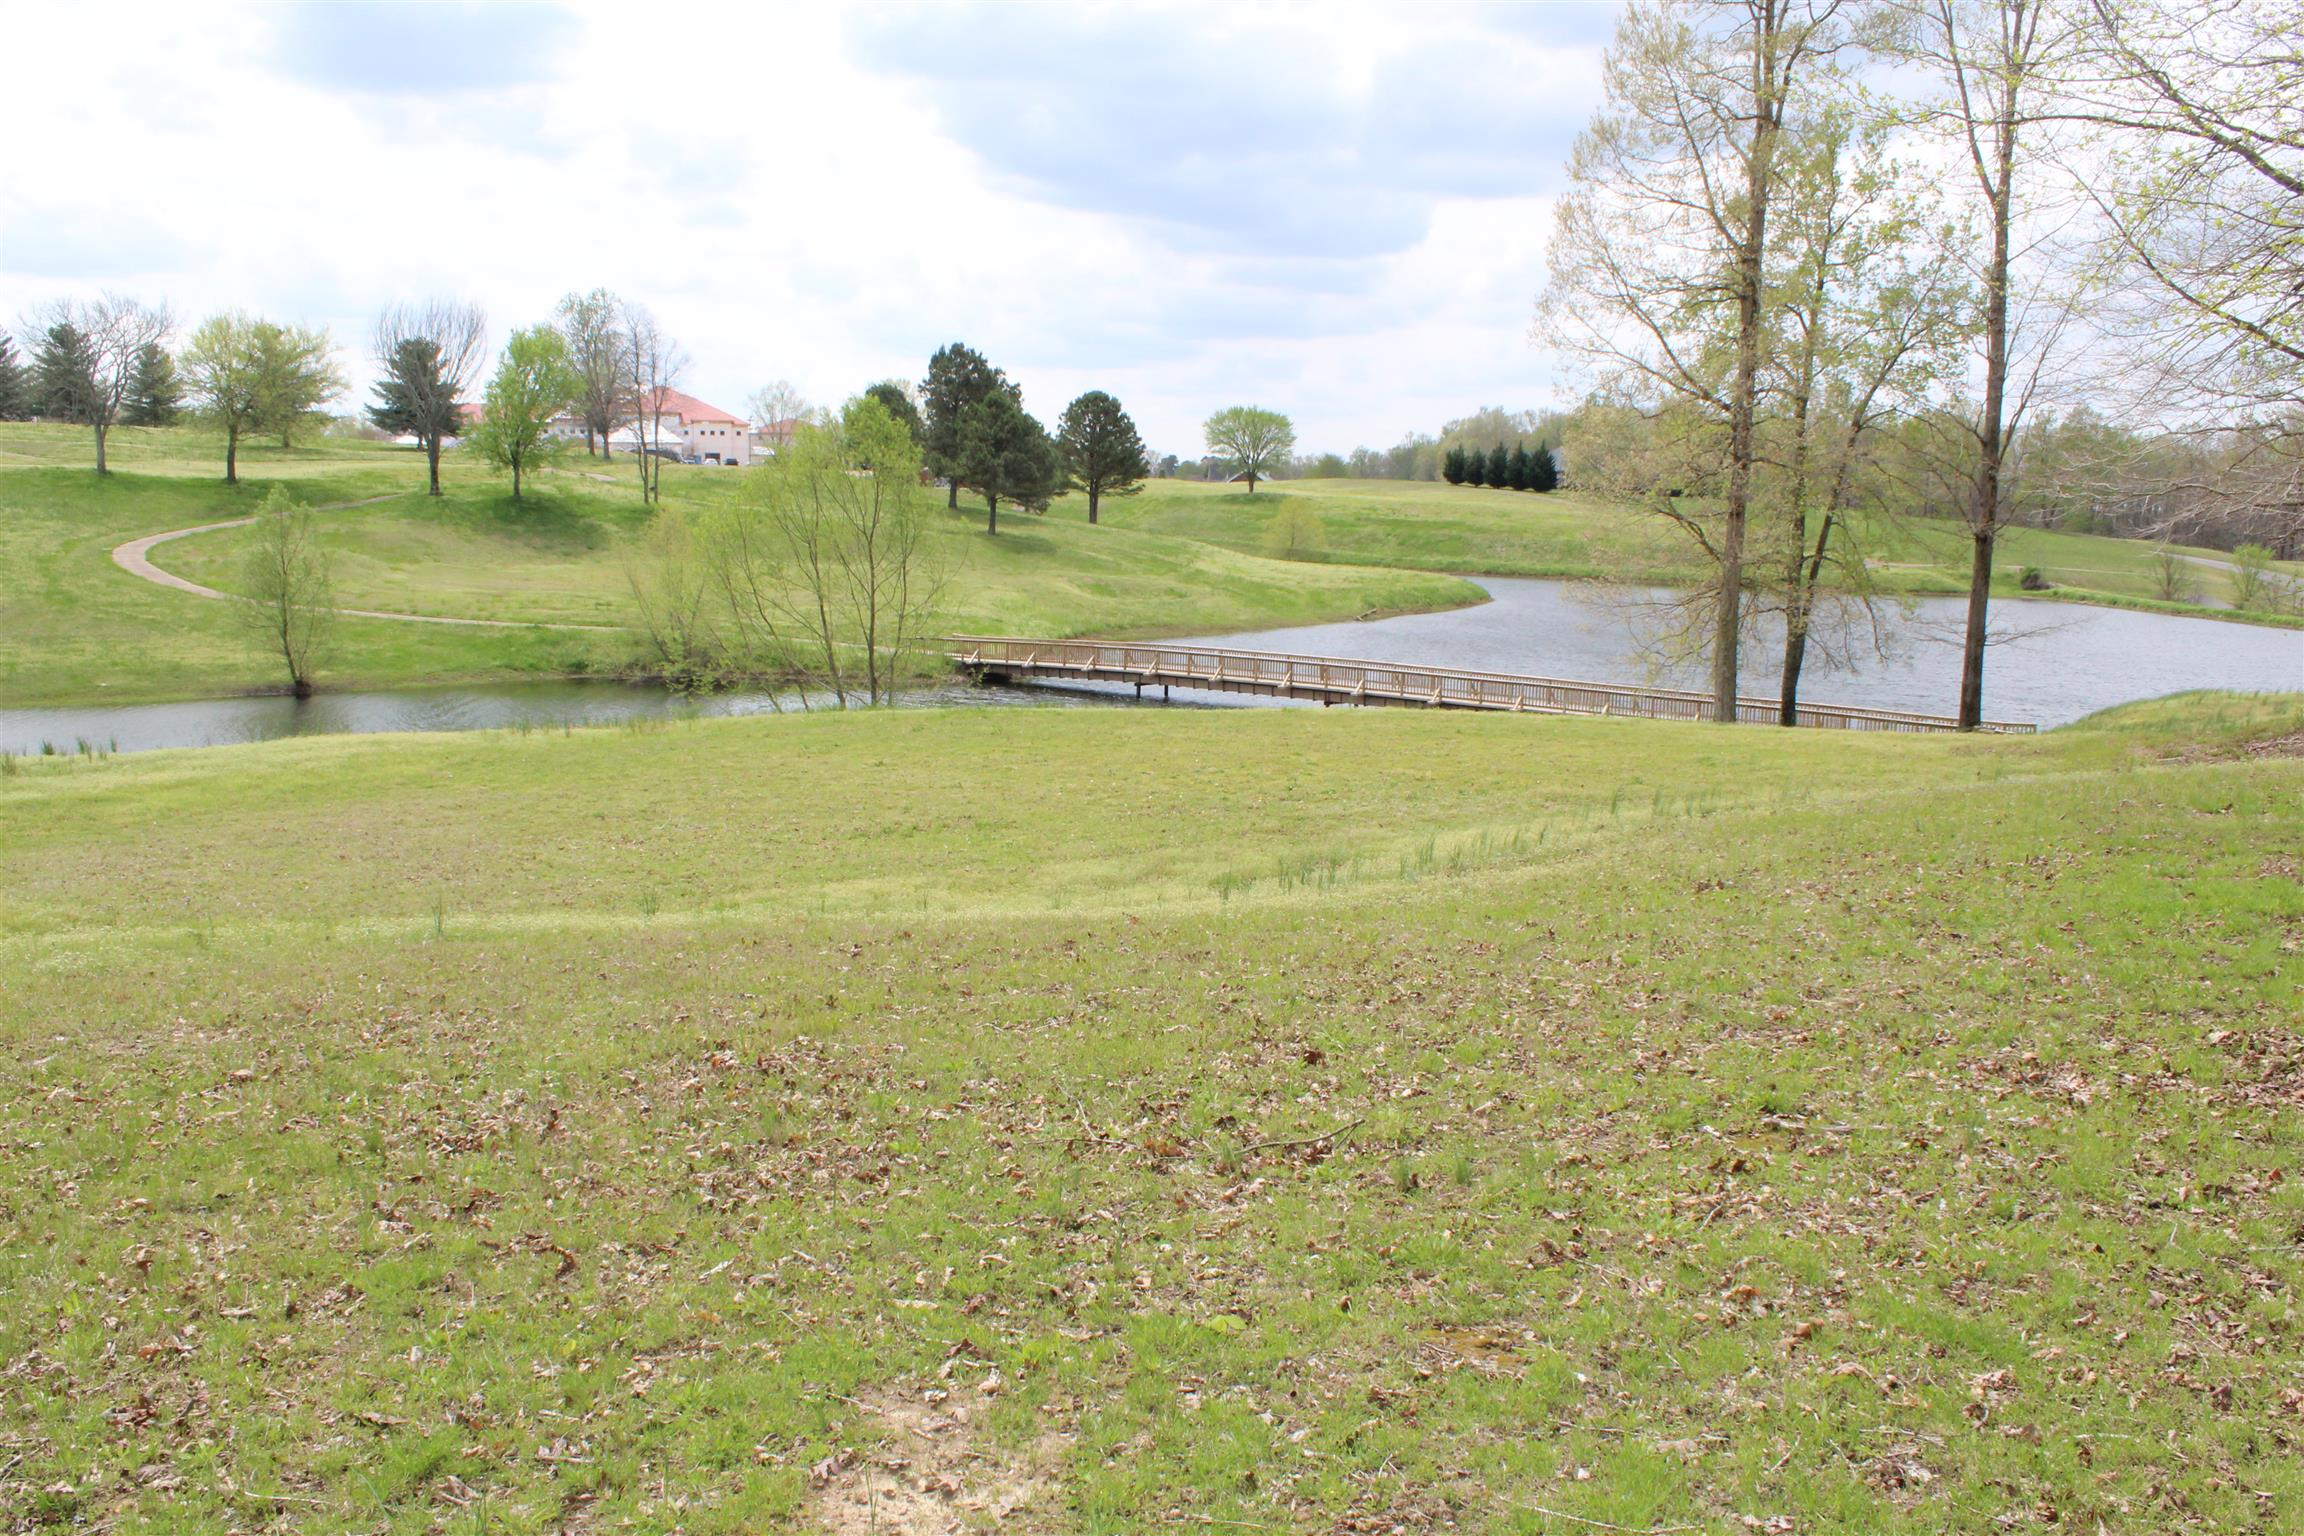 0 Fairway Circle, Loretto, TN 38469 - Loretto, TN real estate listing